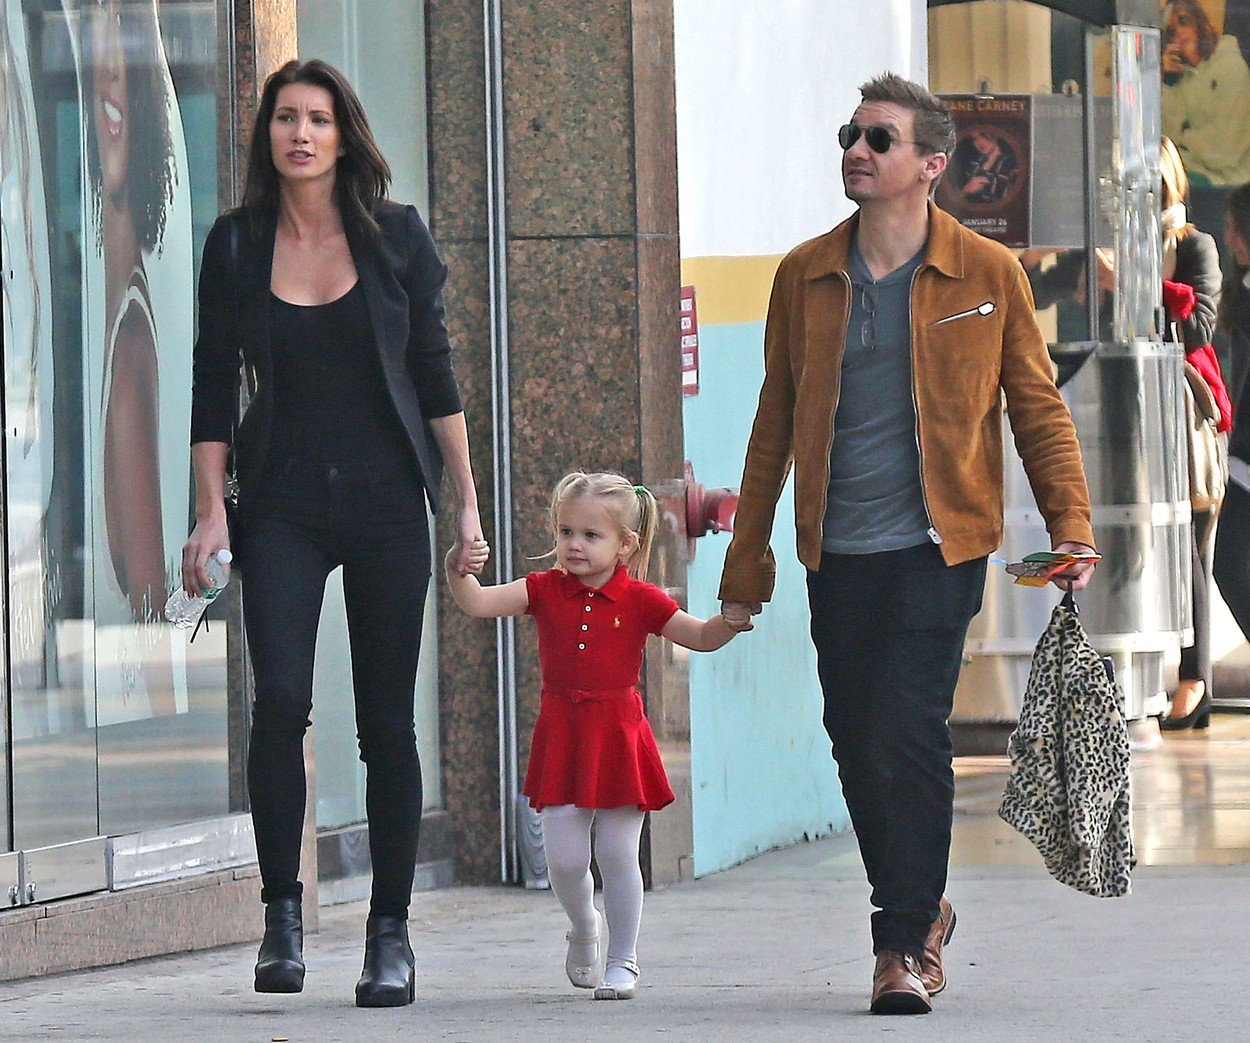 Exclusive... 52258498 Actor Jeremy Renner and his ex-wife Sonni Pacheco reunite to take their daughter Ava to a Christmas play in Hollywood, California on December 14, 2016. The pair who split last year stepped out together for the first time since Sonni was awarded ,000 a month in child support after claiming that Jeremy had fallen behind on his payments., Image: 308435641, License: Rights-managed, Restrictions: , Model Release: no, Credit line: Profimedia, Backgrid USA.